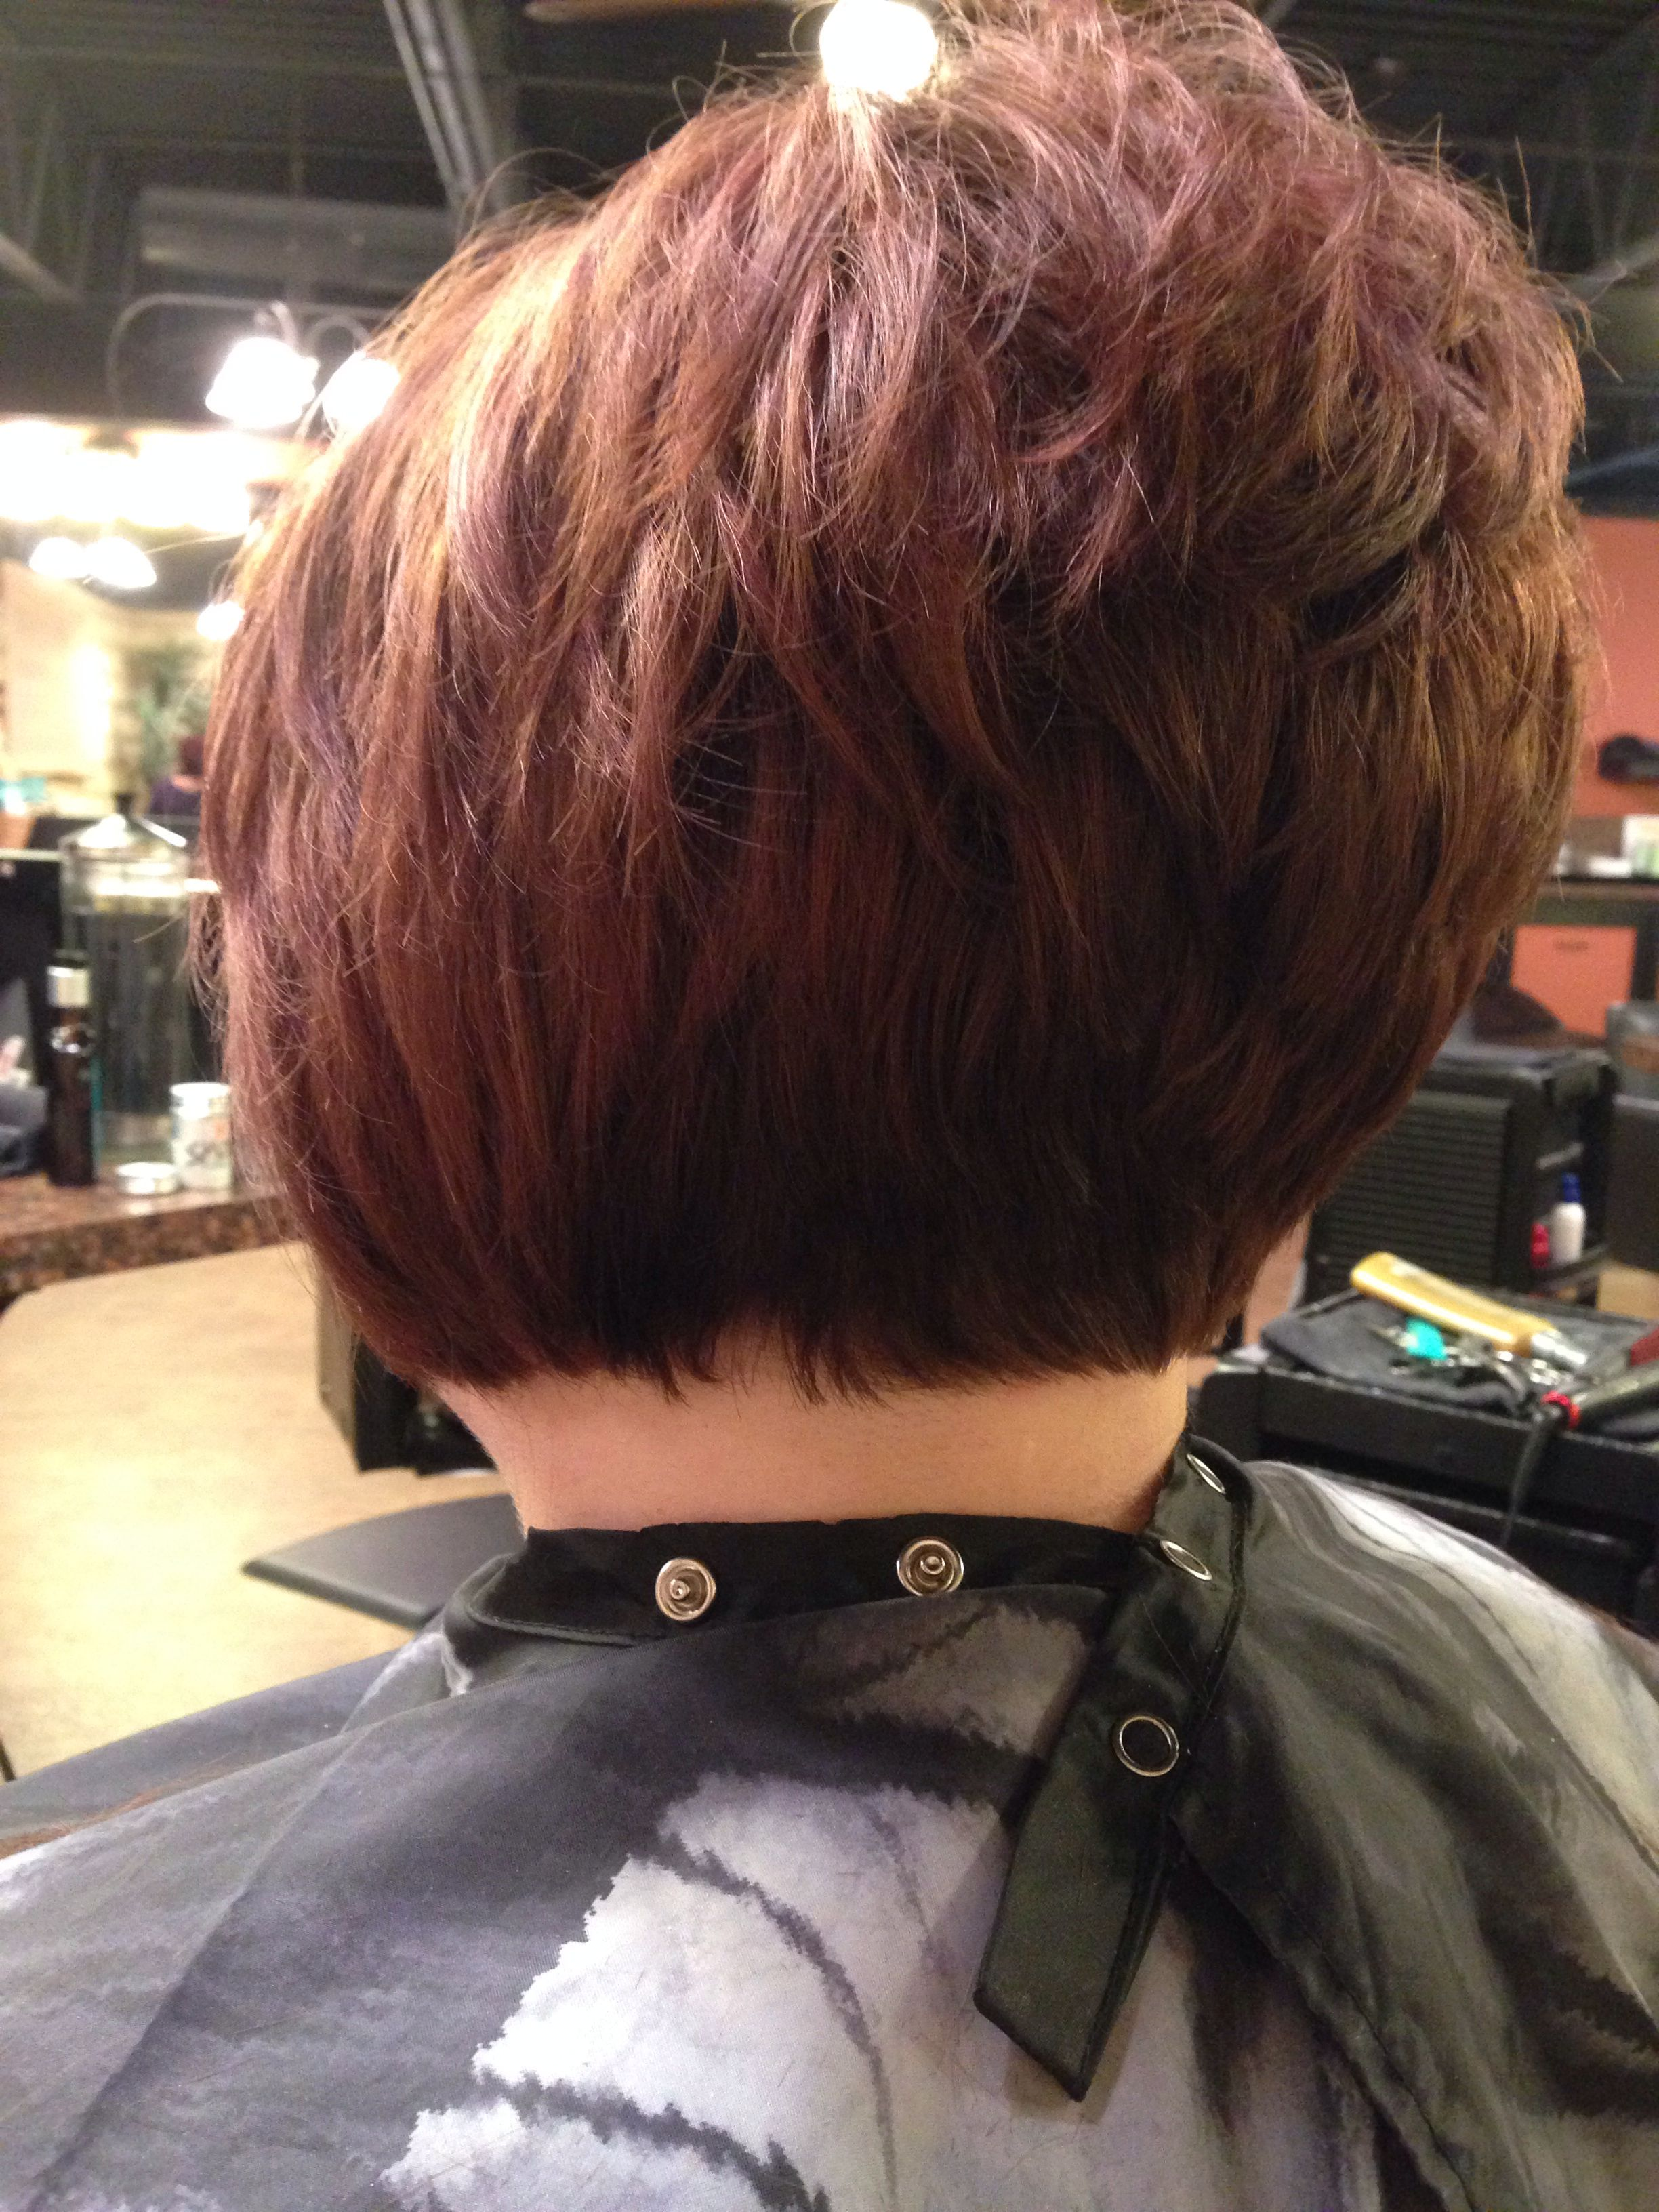 Inverted bob haircut. Awesome stack in the back. | @hair ...